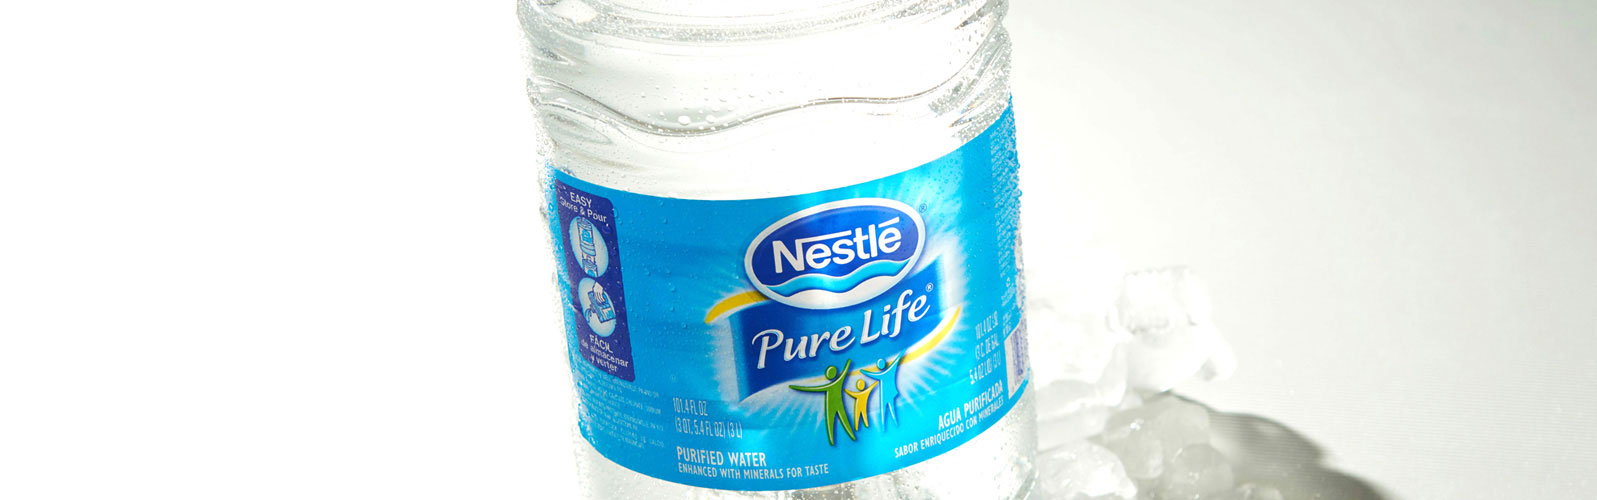 Nestlé Pure Life water bottle pressure sensitive label by Inland